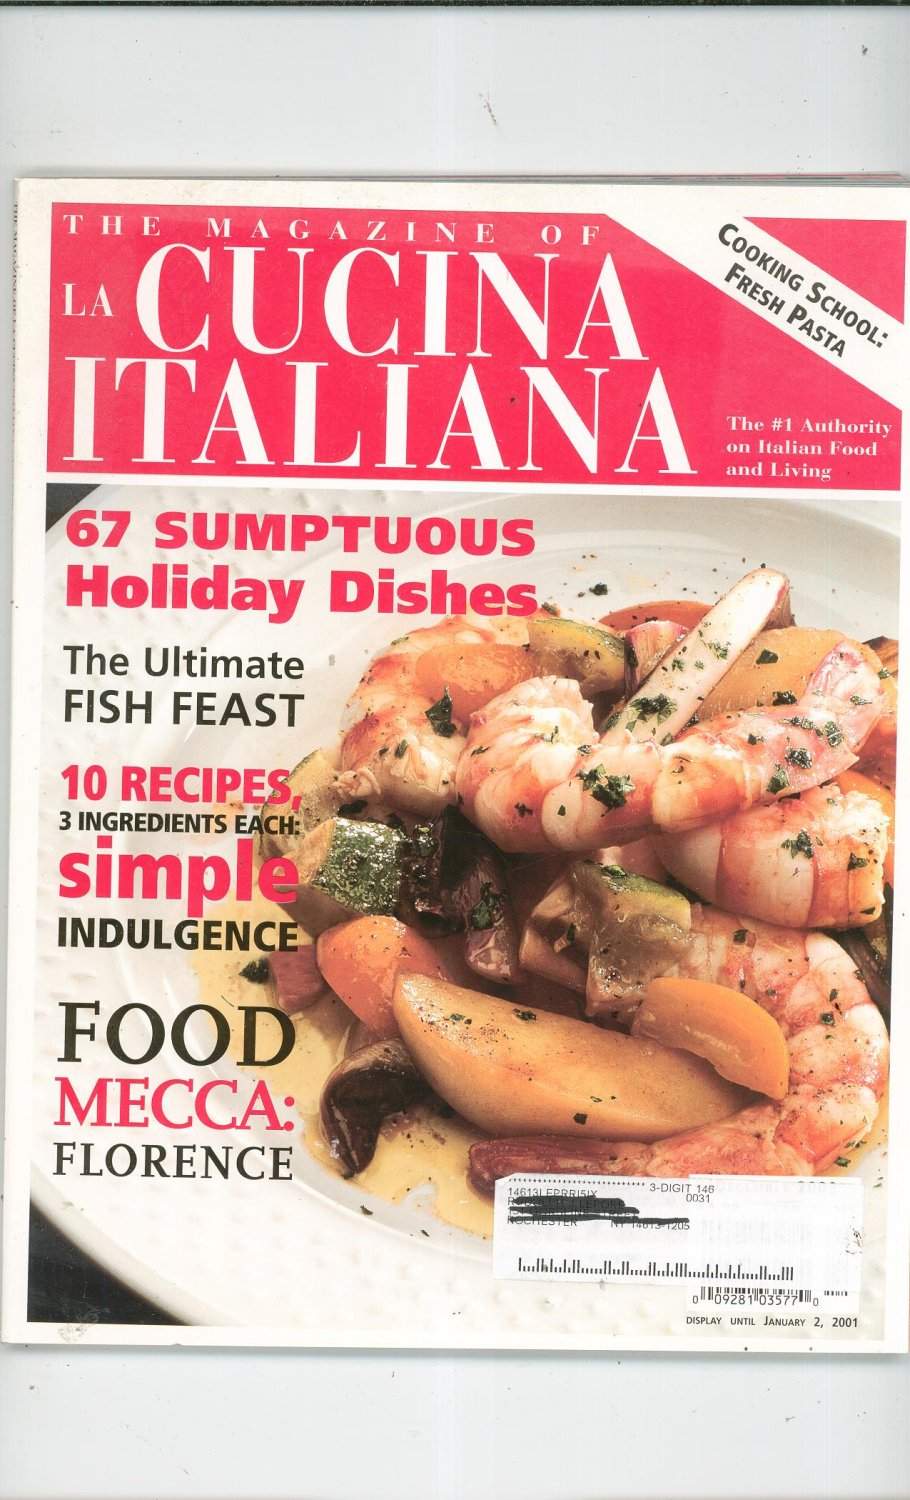 The Magazine Of La Cucina Italiana The Magazine Of La Cucina Italiana November December 2000 Fresh